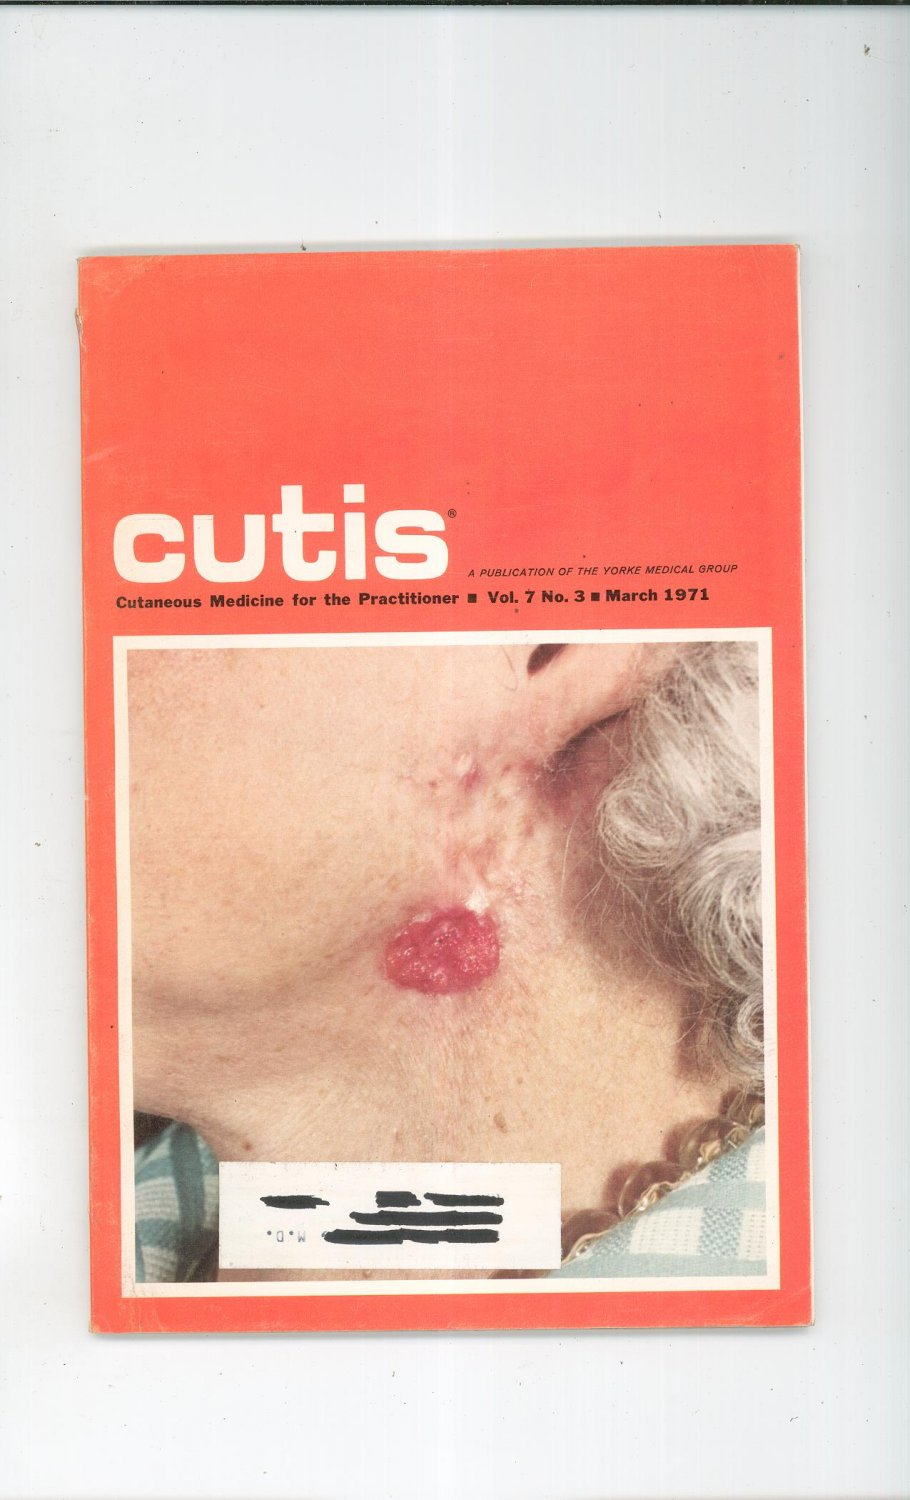 March 1971 Cutis Cutaneous Medicine For The Practitioner Magazine Vintage